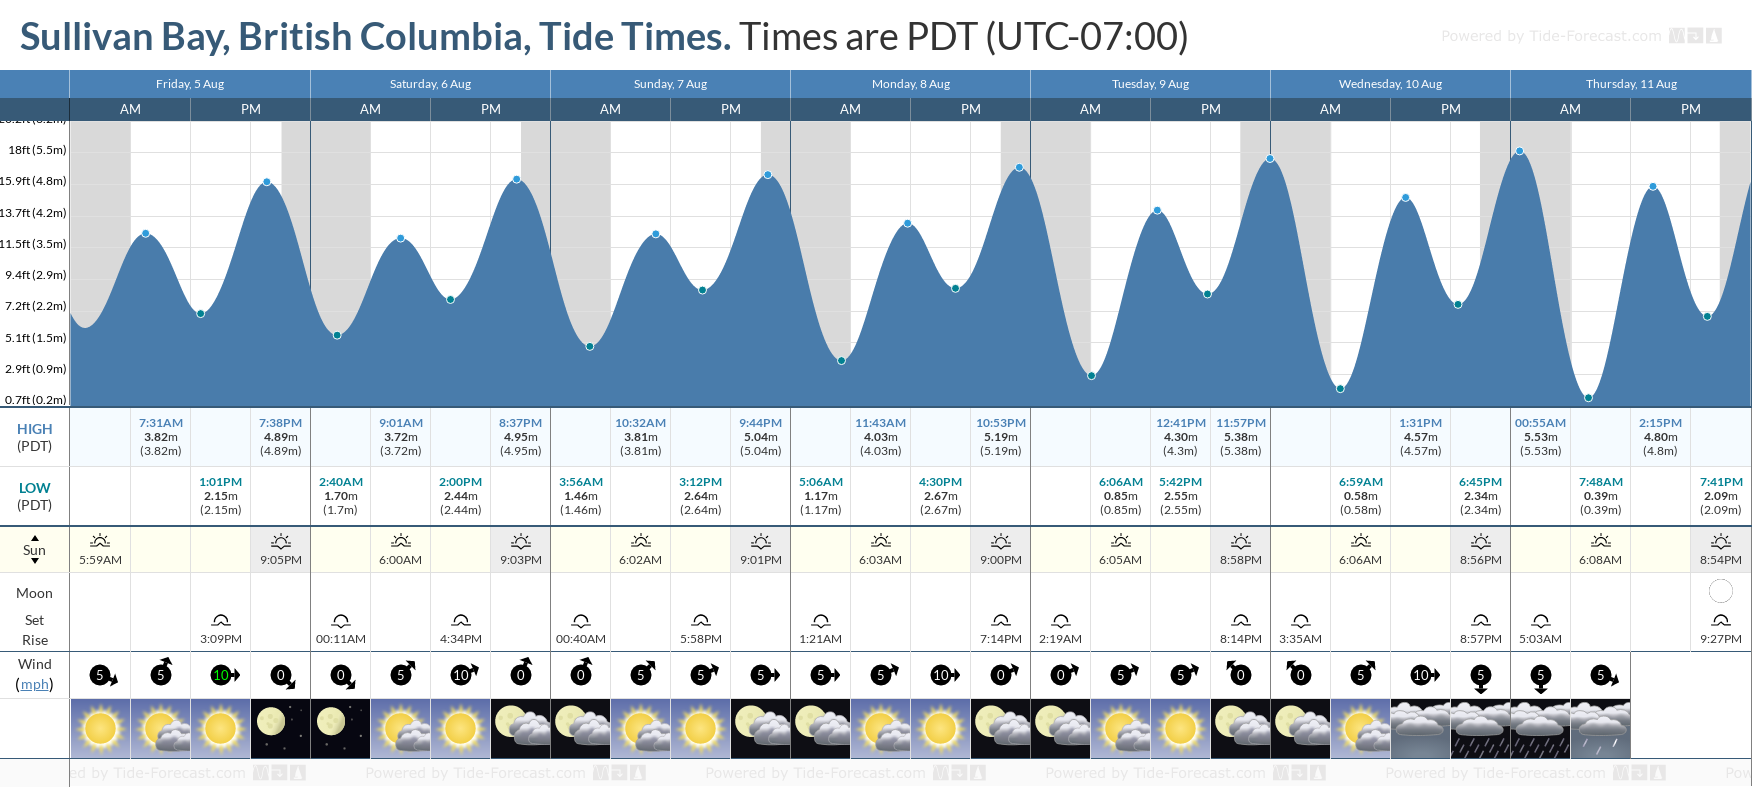 Sullivan Bay, British Columbia Tide Chart including high and low tide tide times for the next 7 days